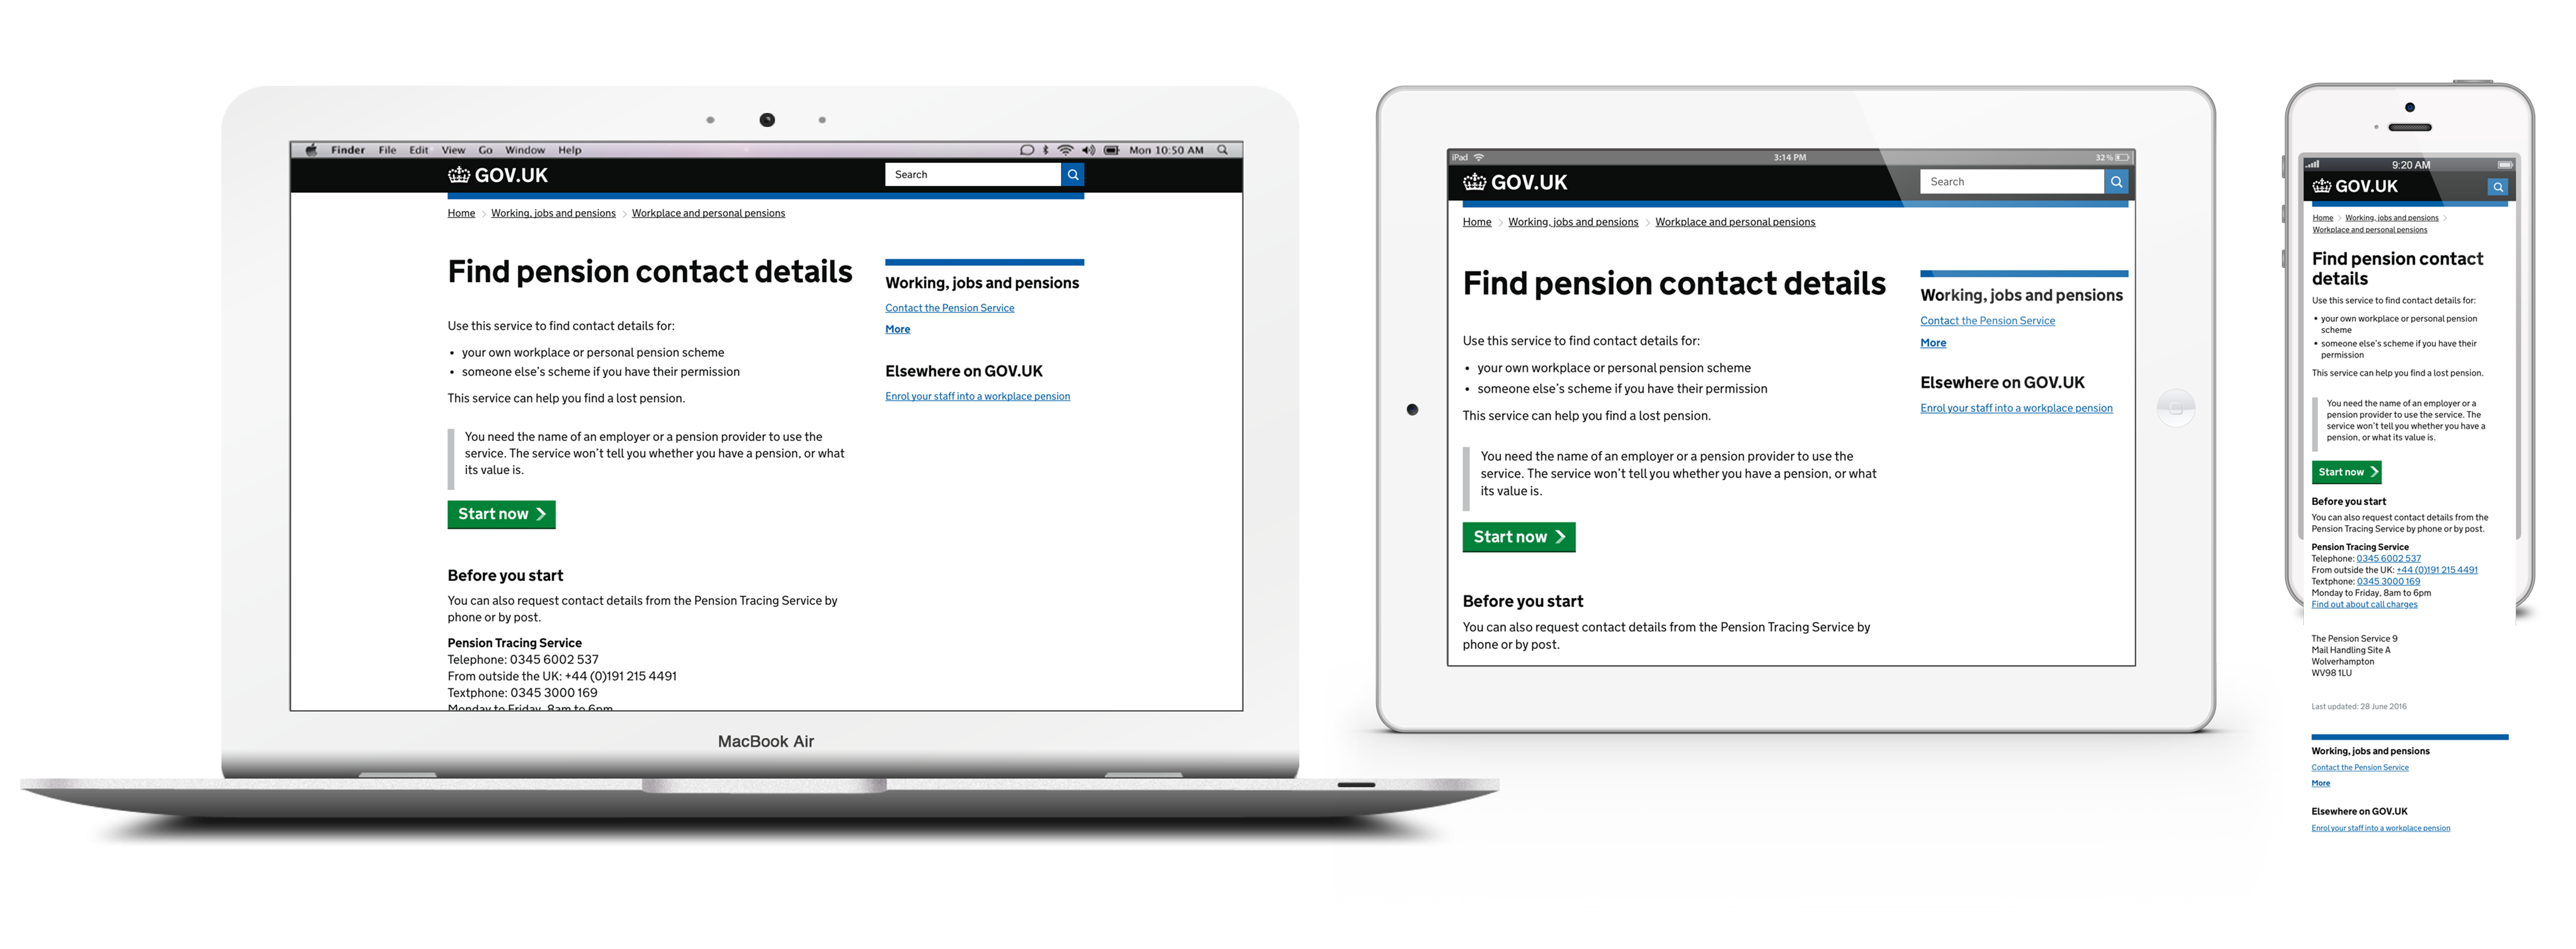 Find a lost pension responsive website